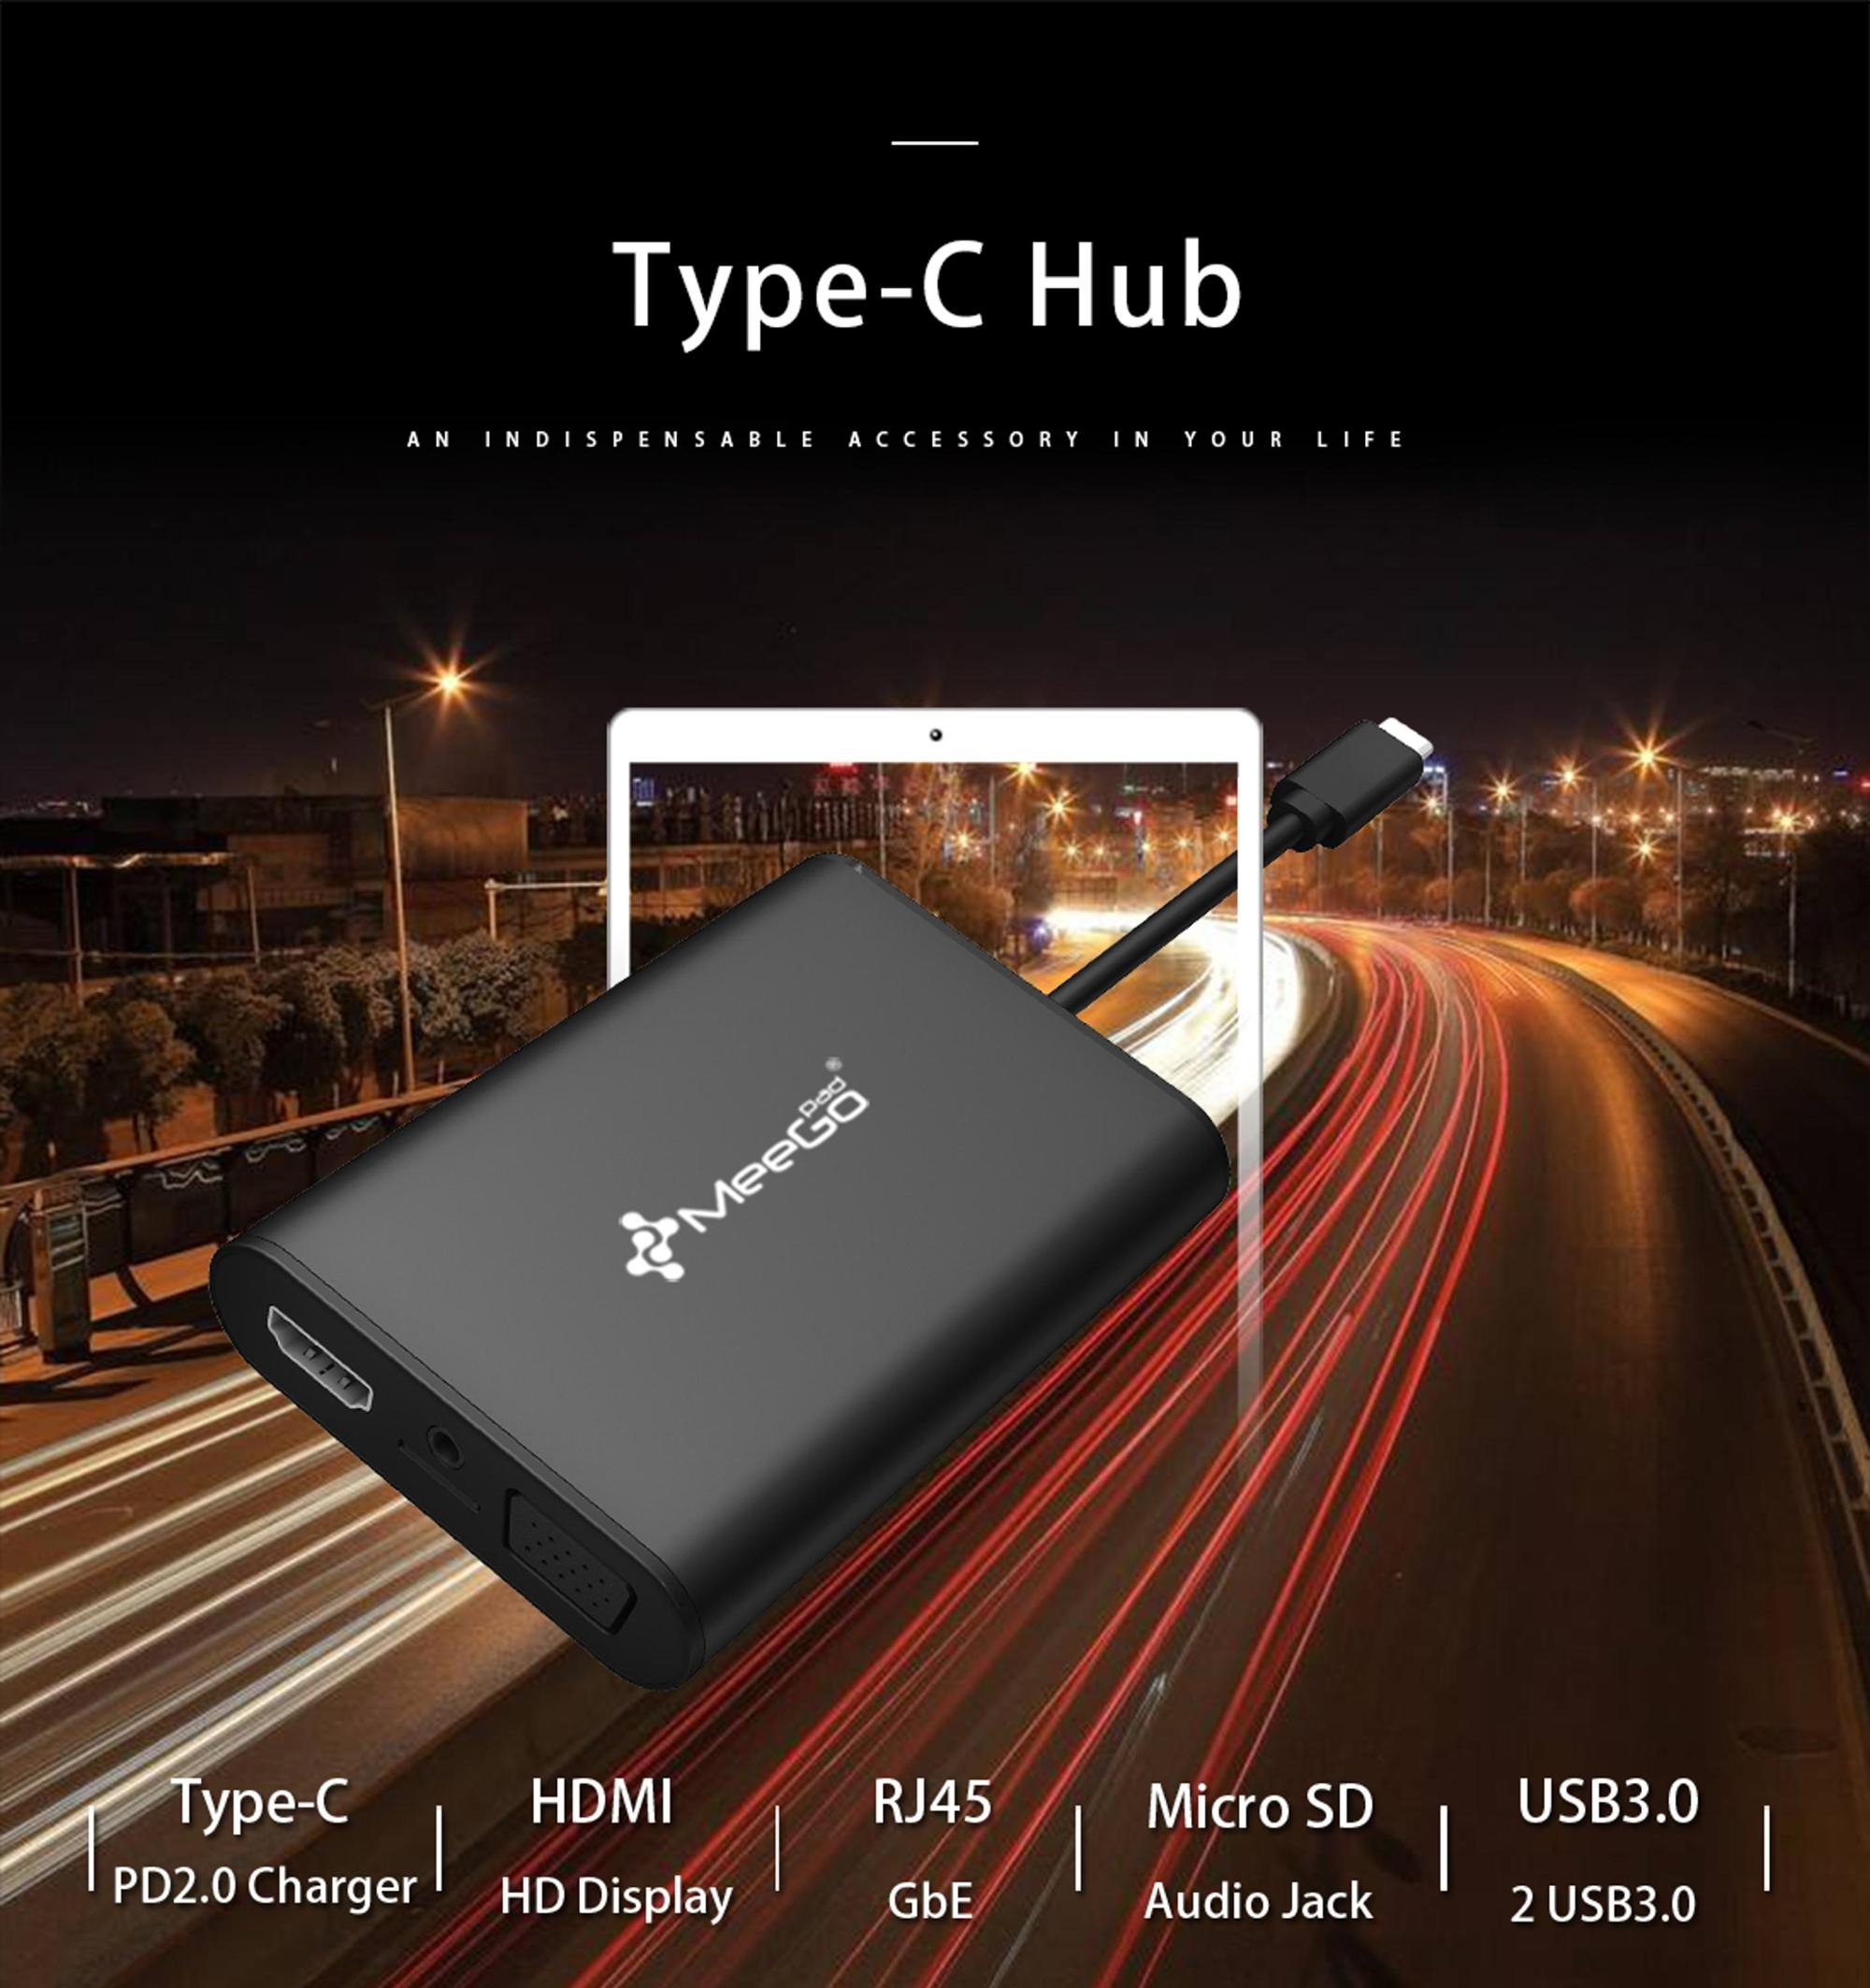 MEEGOPAD 8 in 1 Wholesale HD&MI+ VGA 3.5mm USB TF USB3.0 RJ45 Type C Hub Usb Hub with Audio